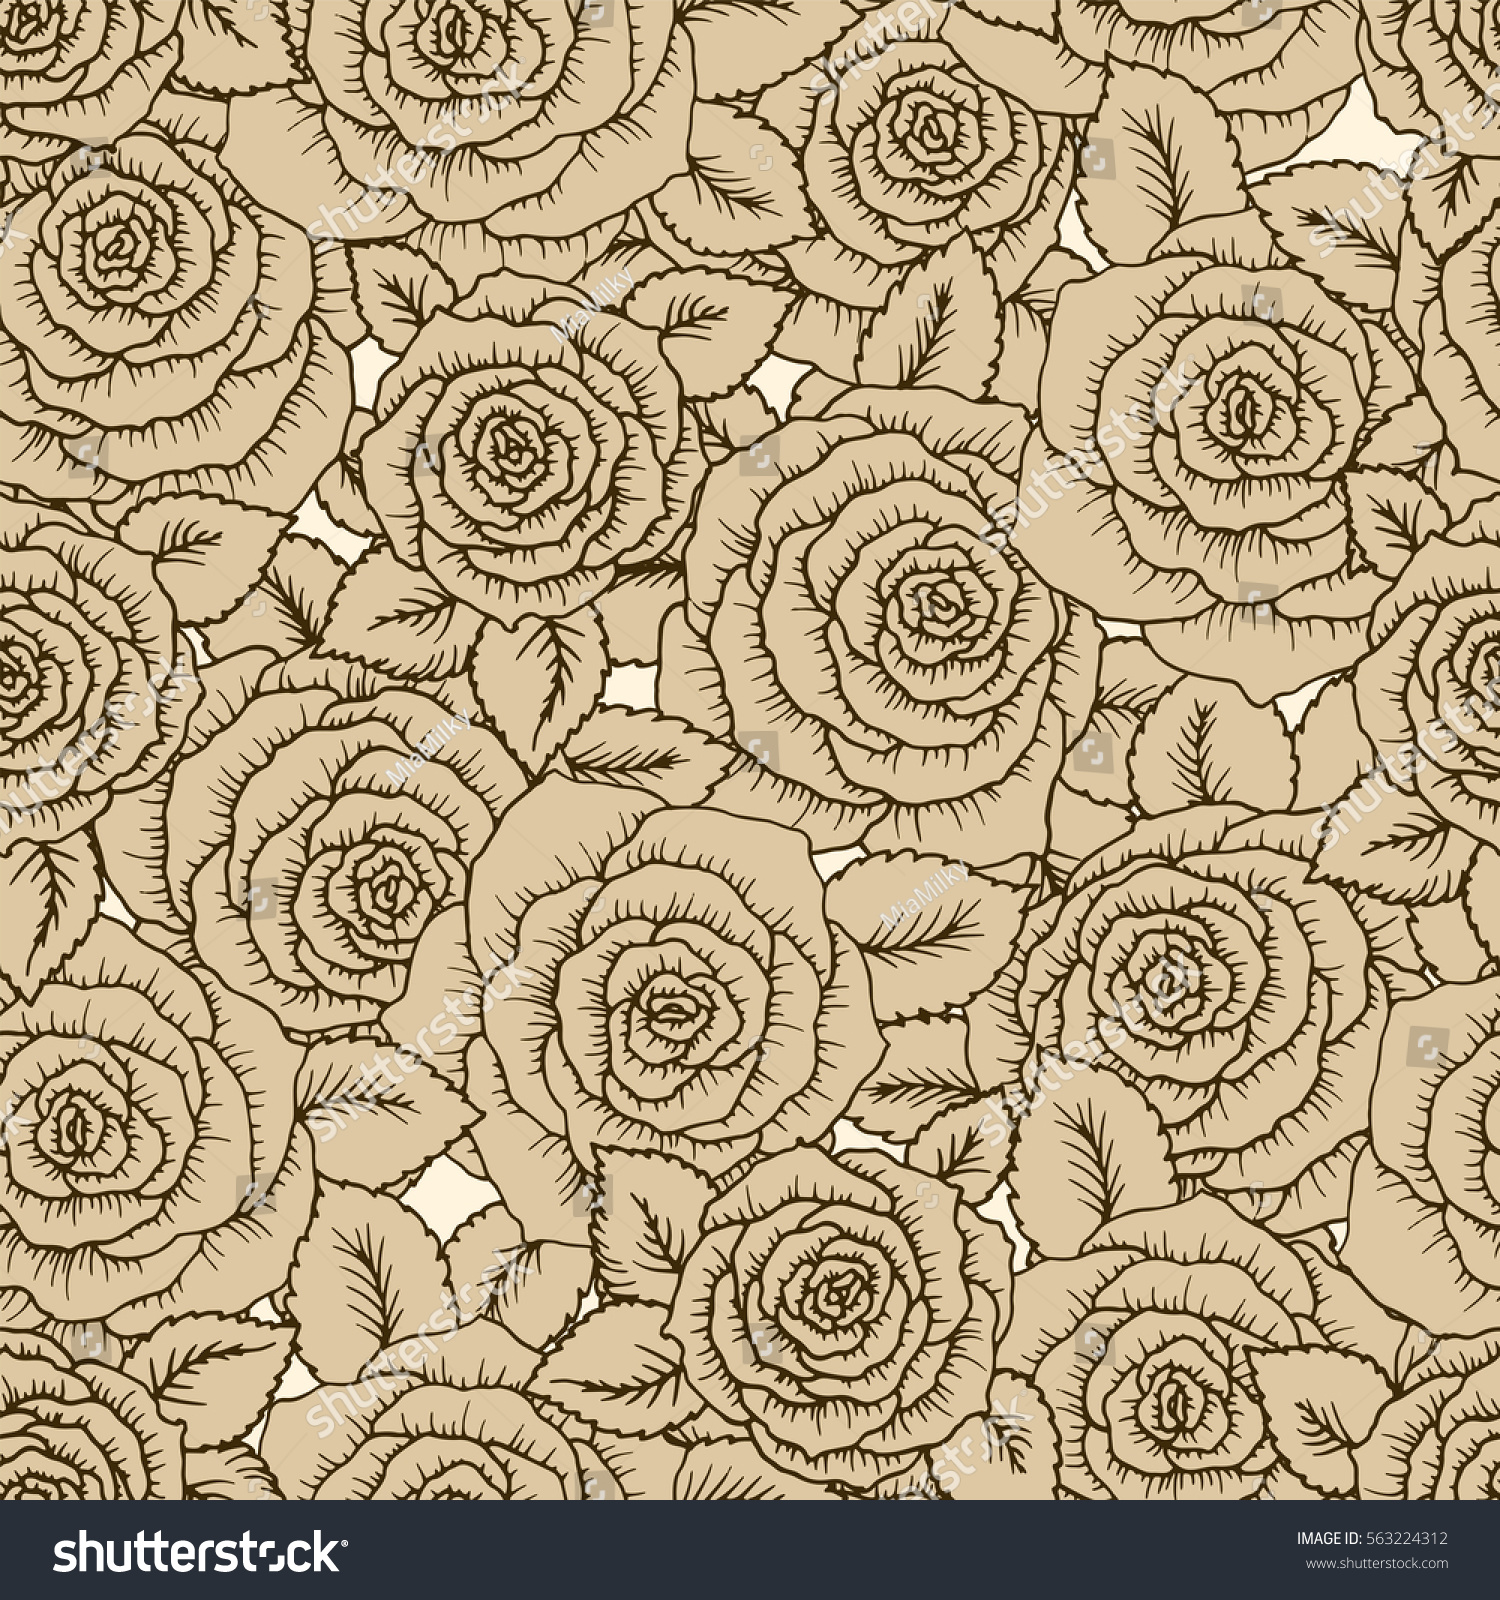 Vintage seamless pattern with garden beige roses on light background ...